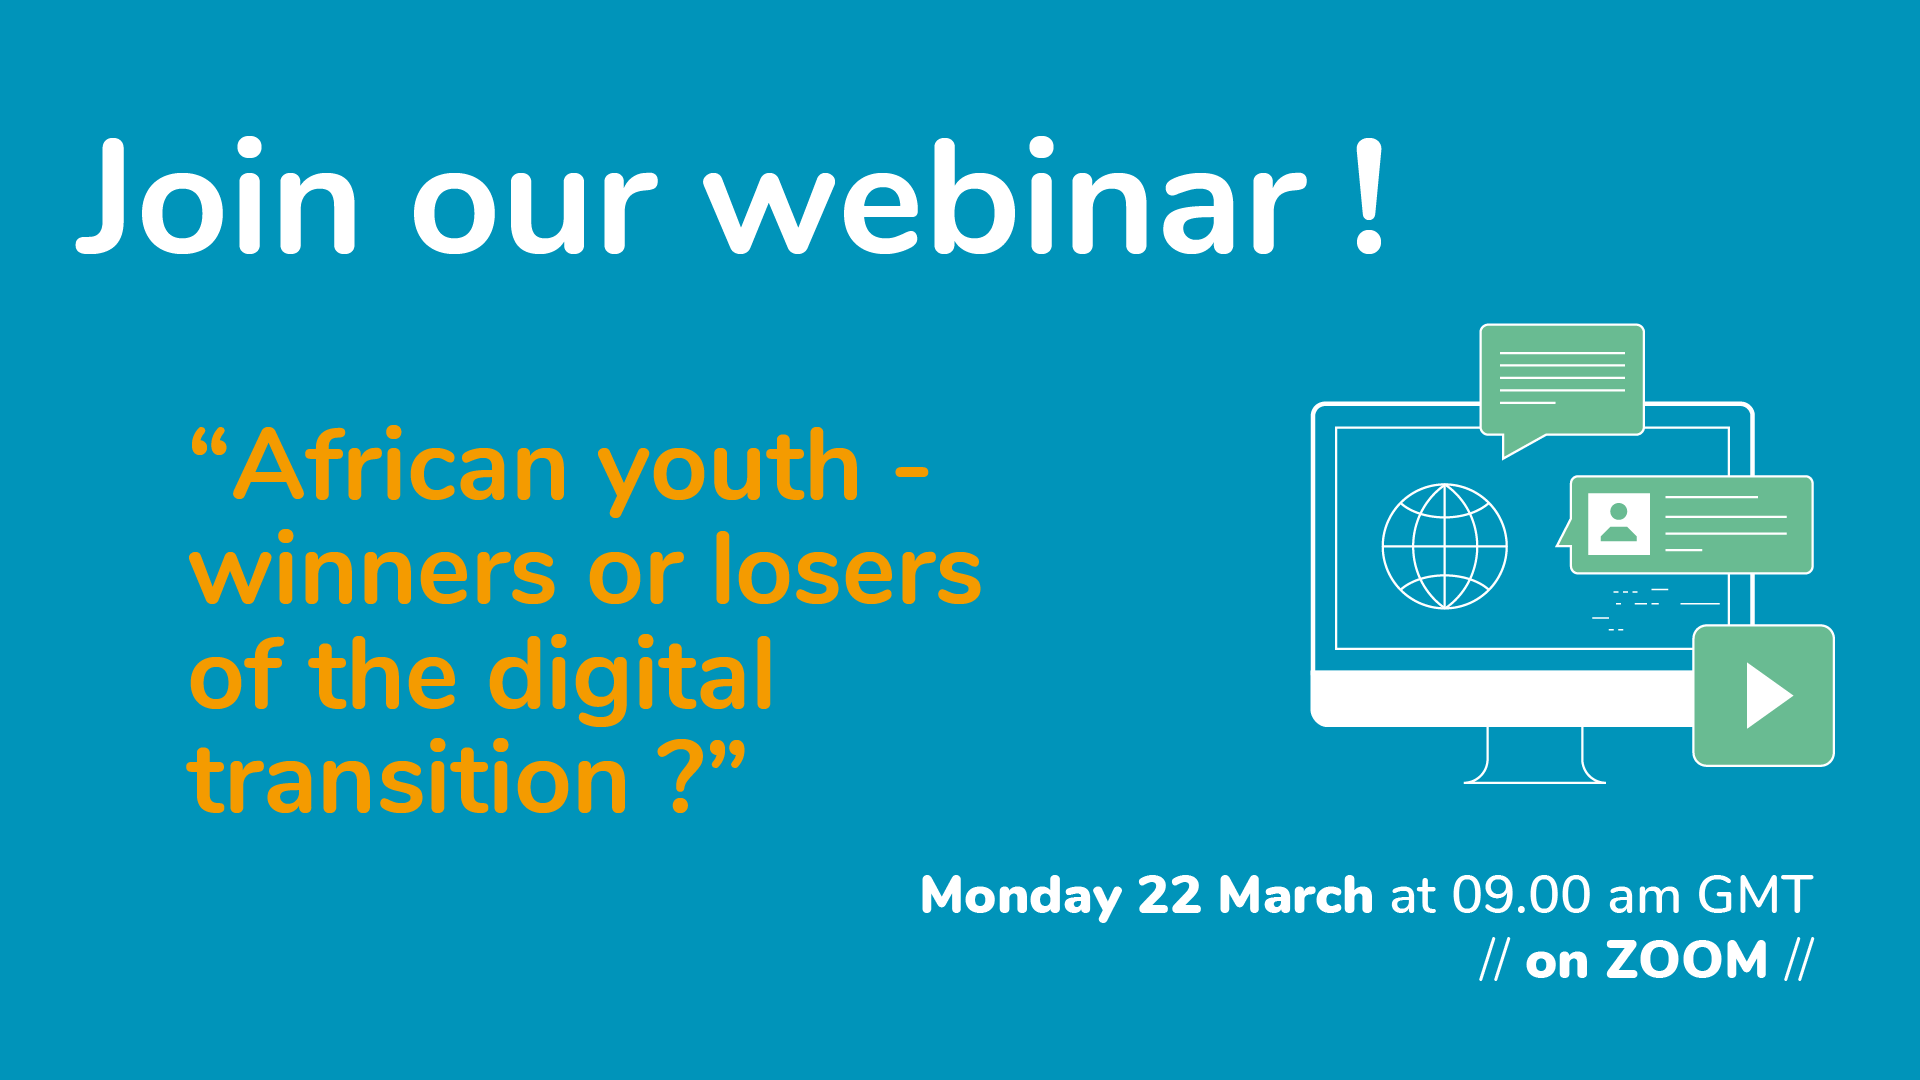 PUBLIC WEBINAR: AFRICAN YOUTH – WINNERS OR LOSERS OF THE DIGITAL TRANSITION?